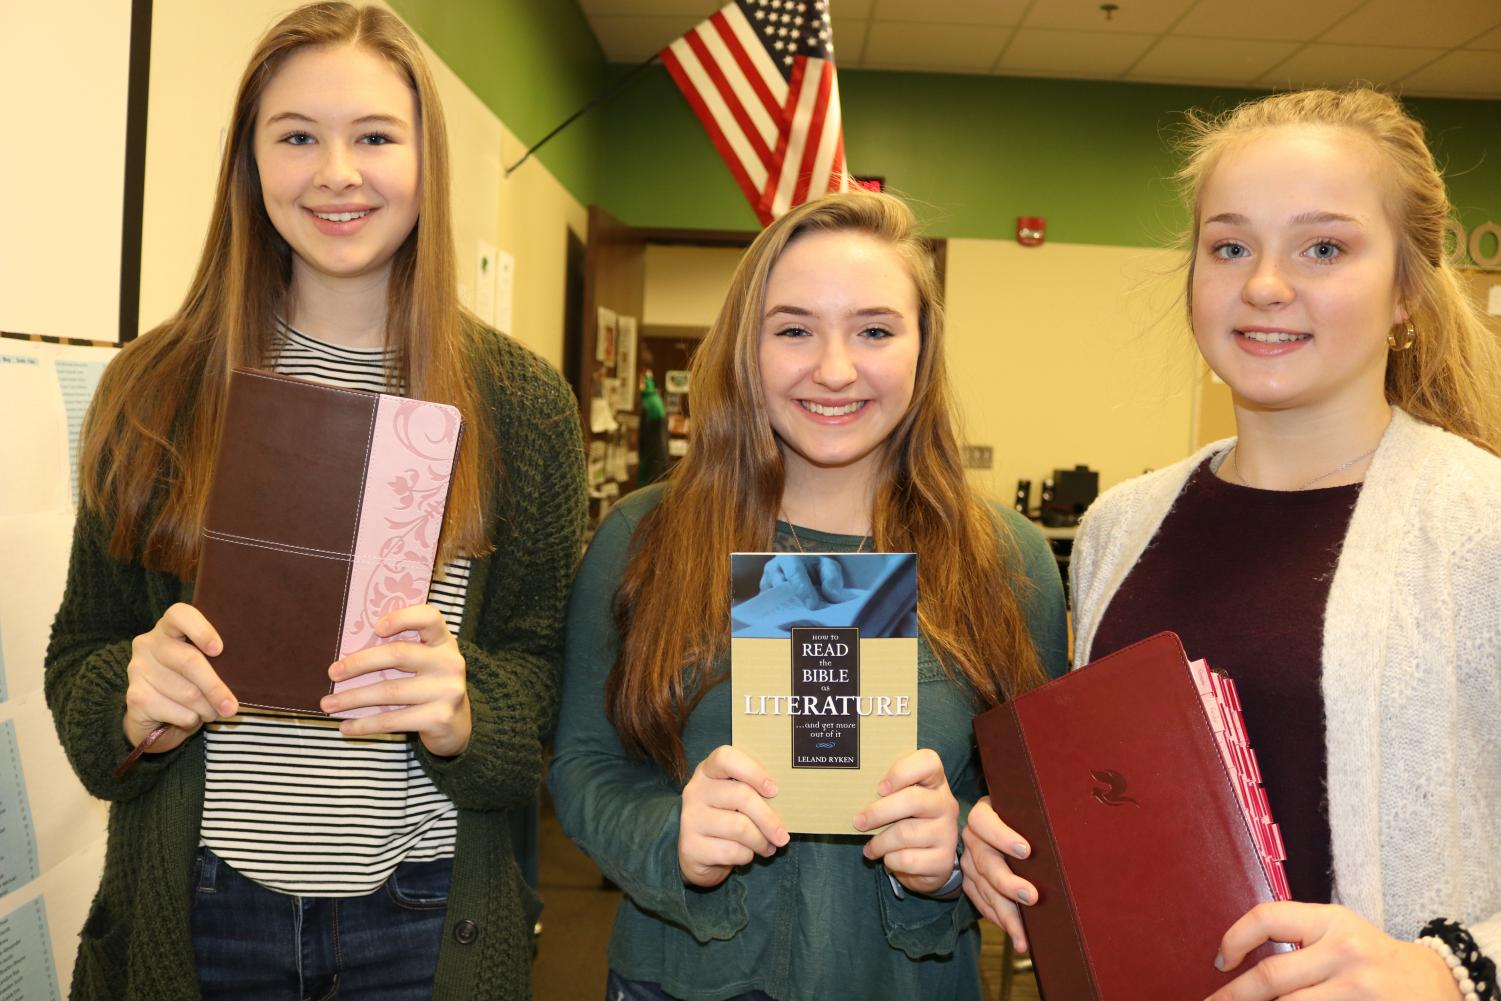 Emily Johnson, Lyric Greenwood and Audrey Wise from Meridian High School hold Bibles that they will use in class.